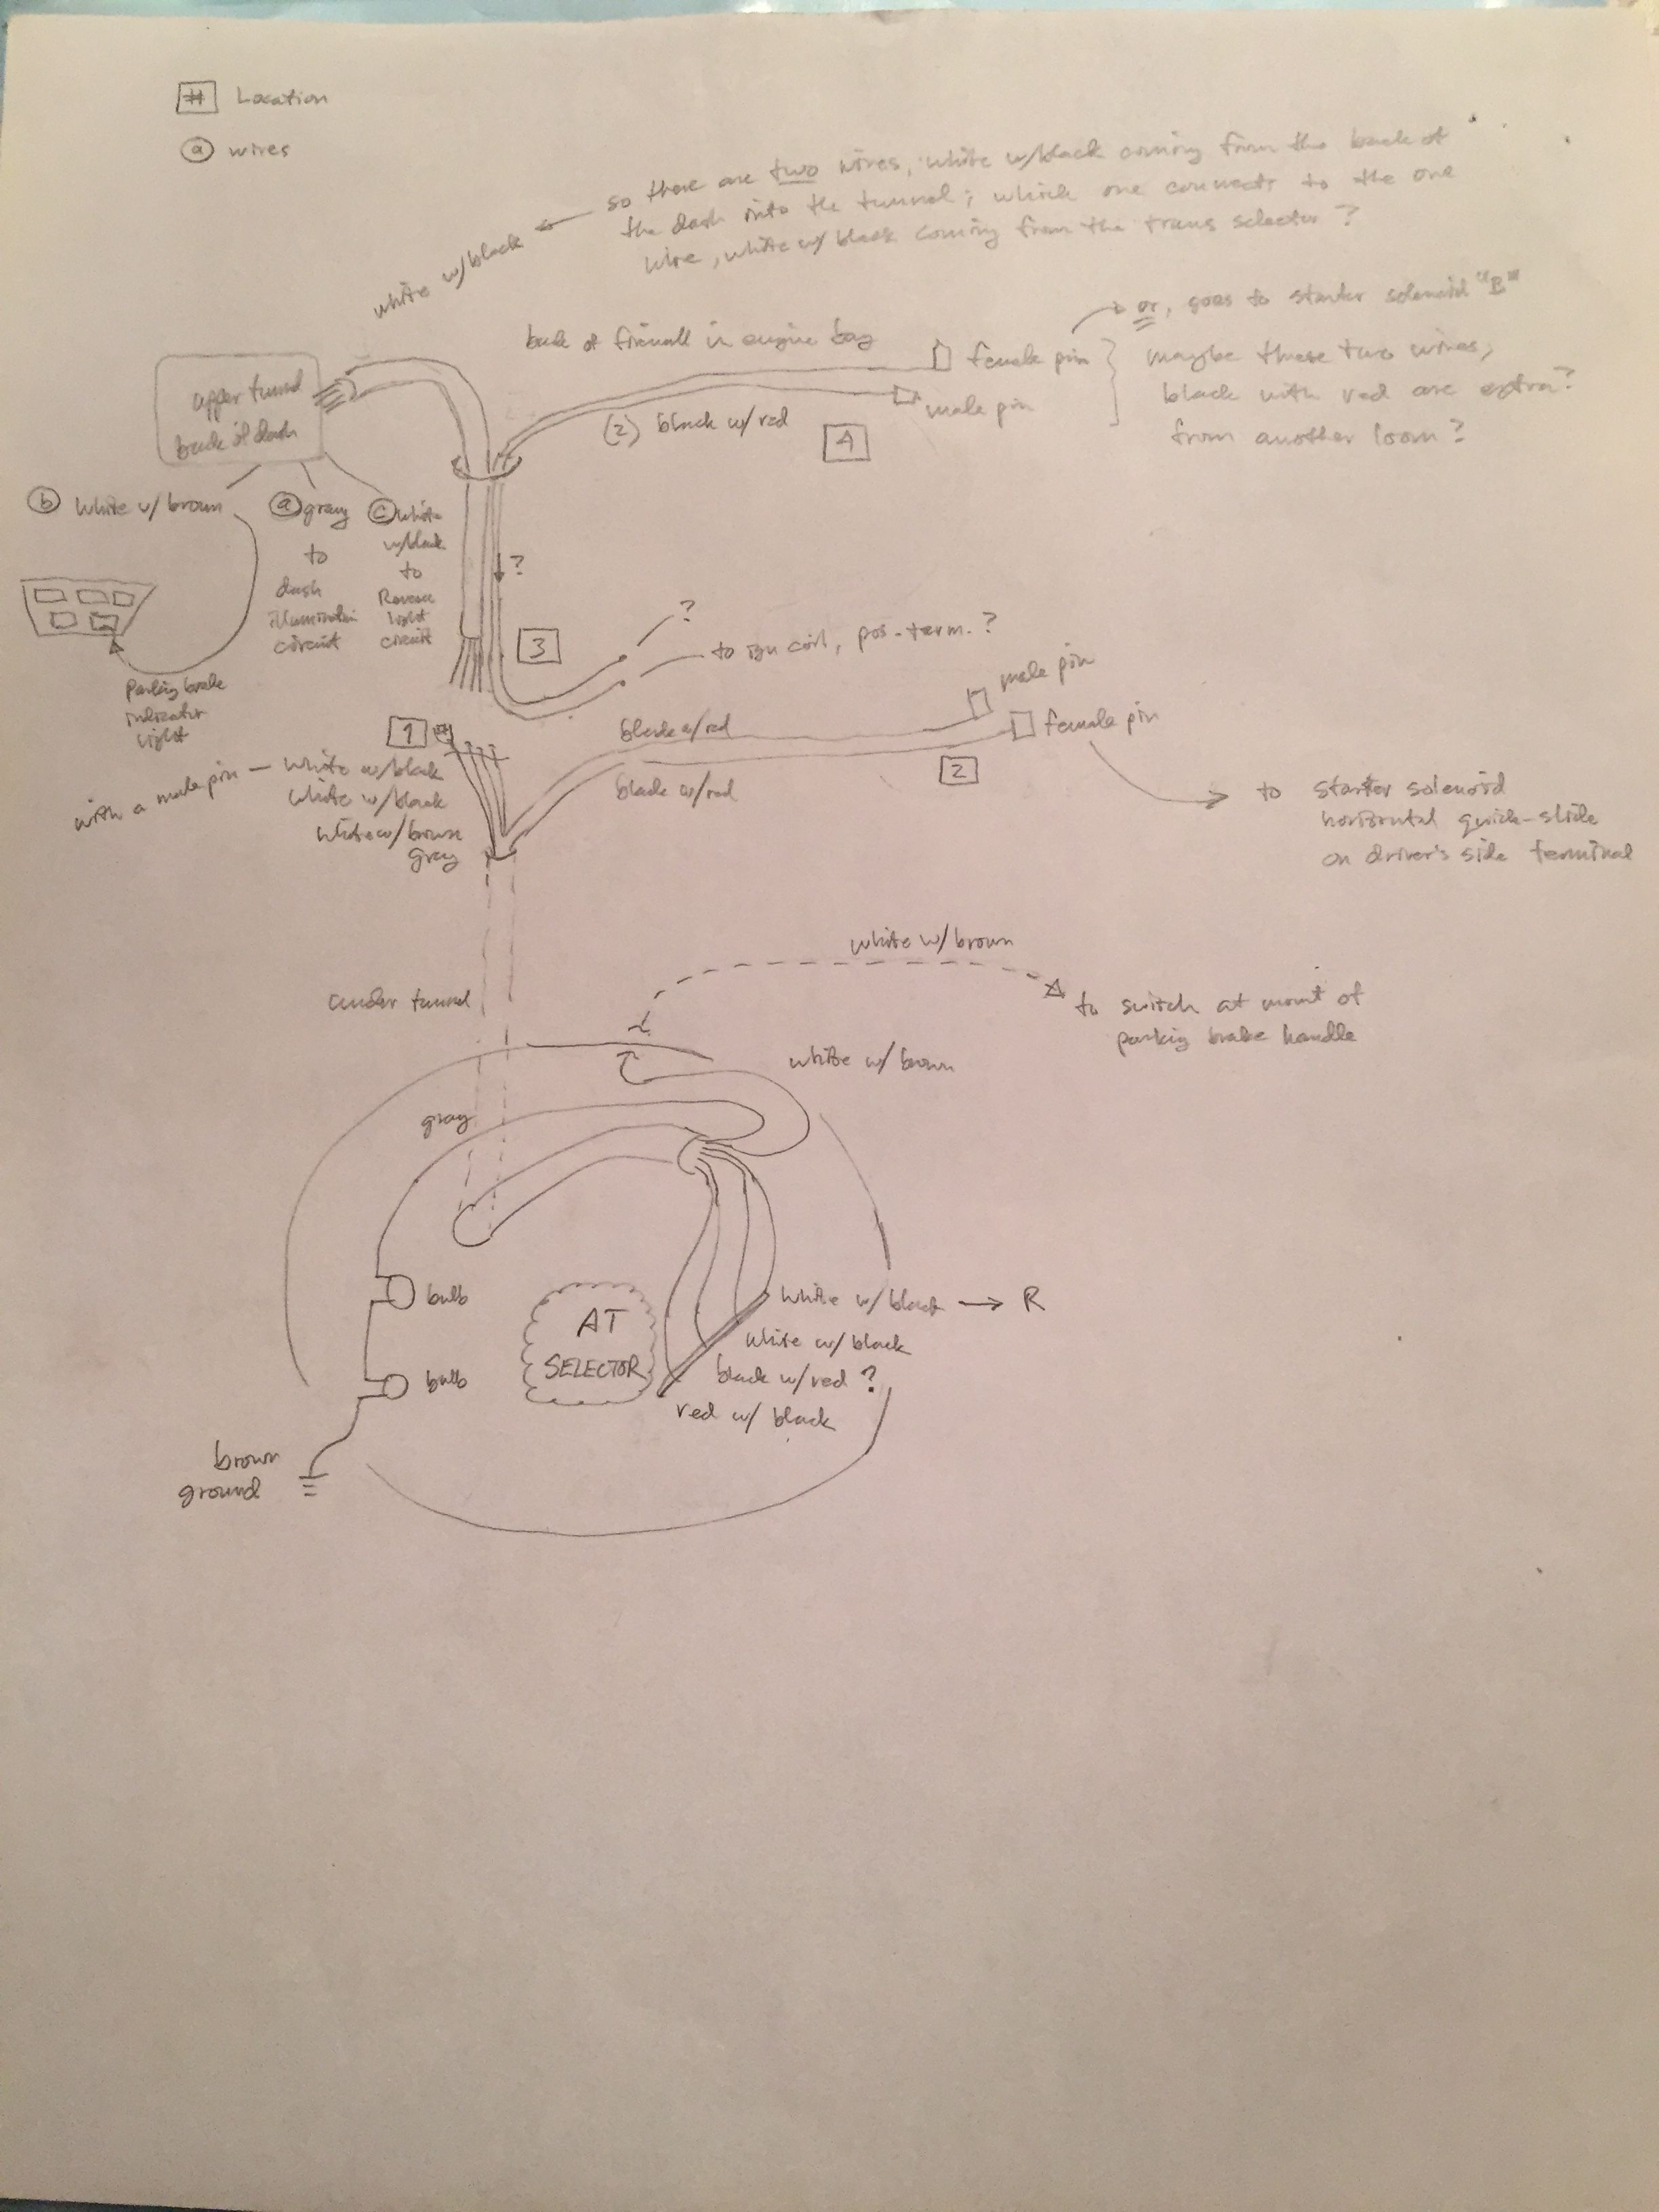 Wiring sketch for the area from the AT selector forwards